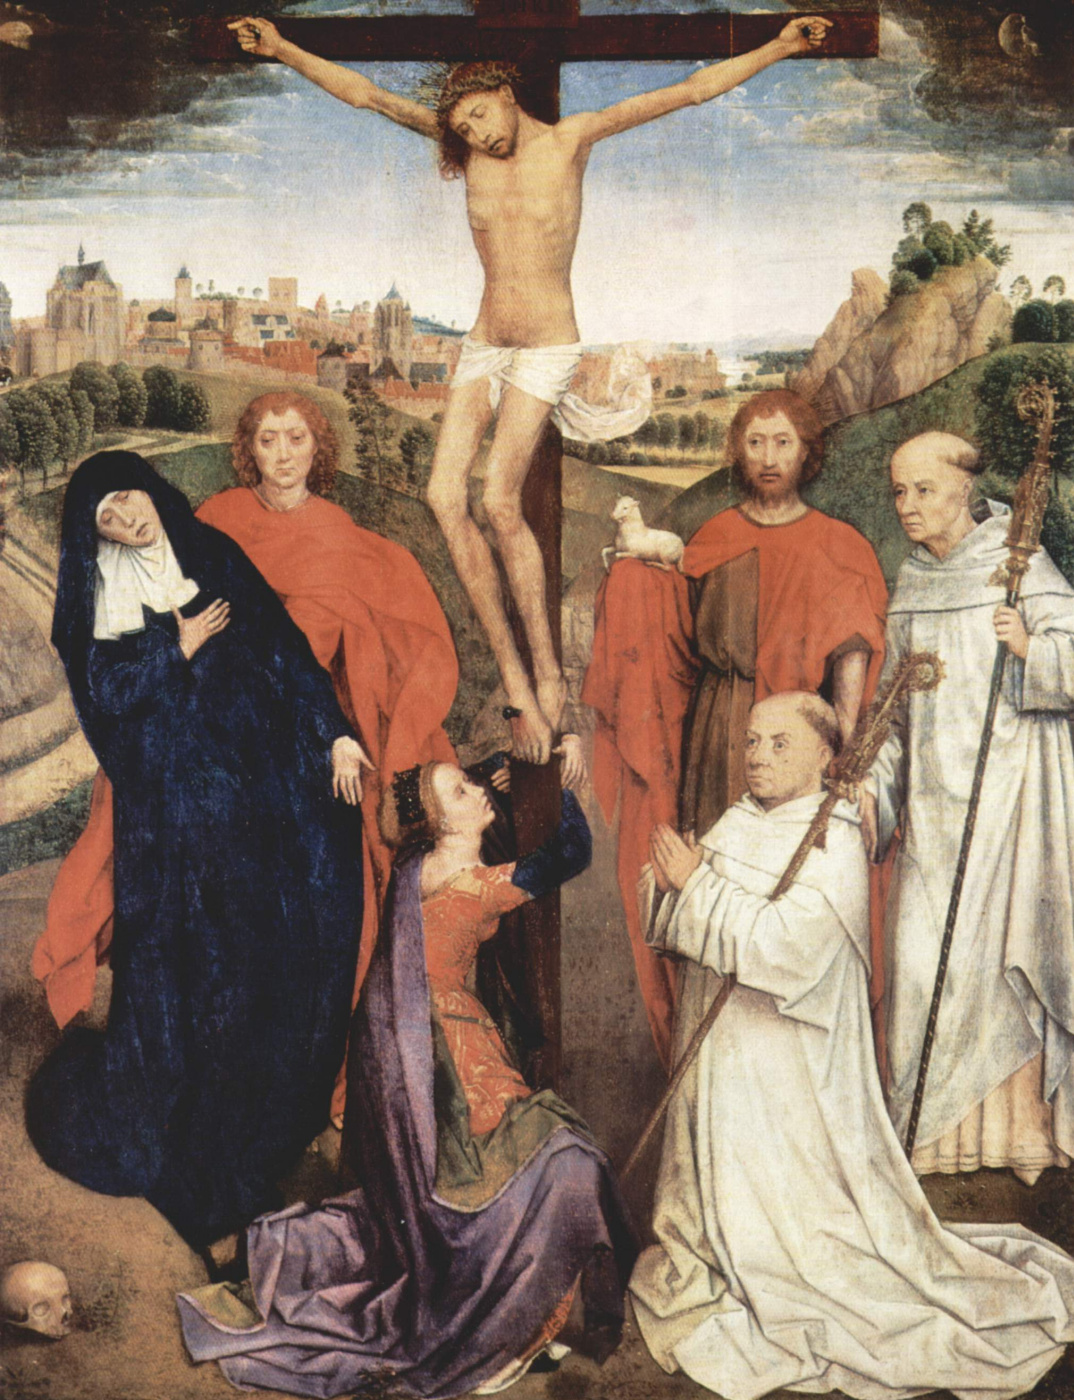 Hans Memling. The crucifixion. Triptych Of Jan Crabbe. The Central part